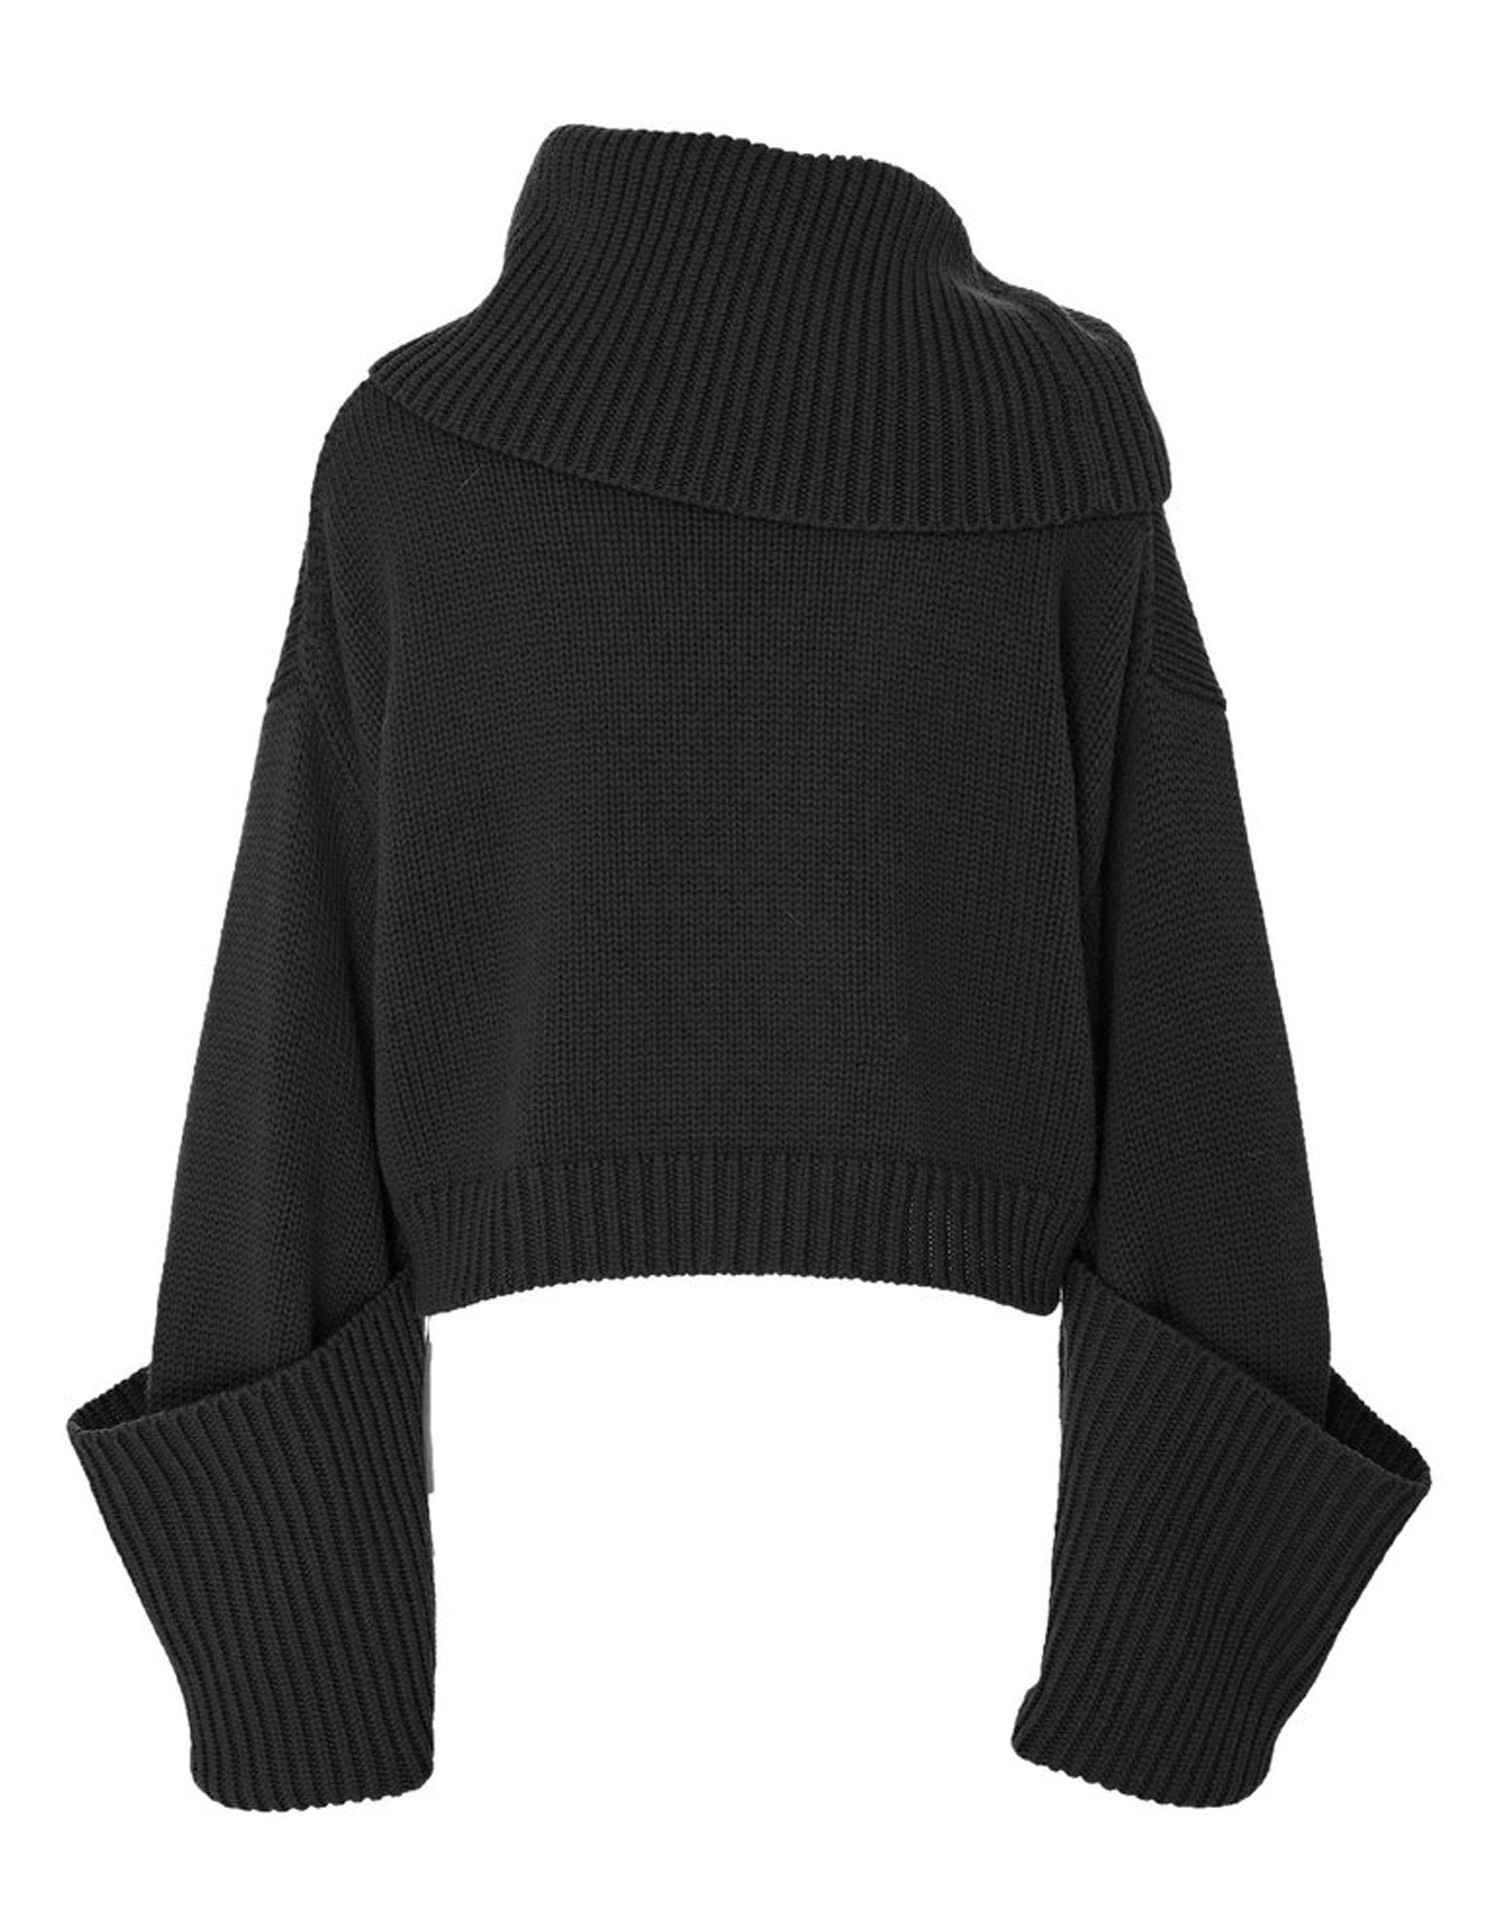 MONSE Giant Cuff Sweater in Black Flat Front